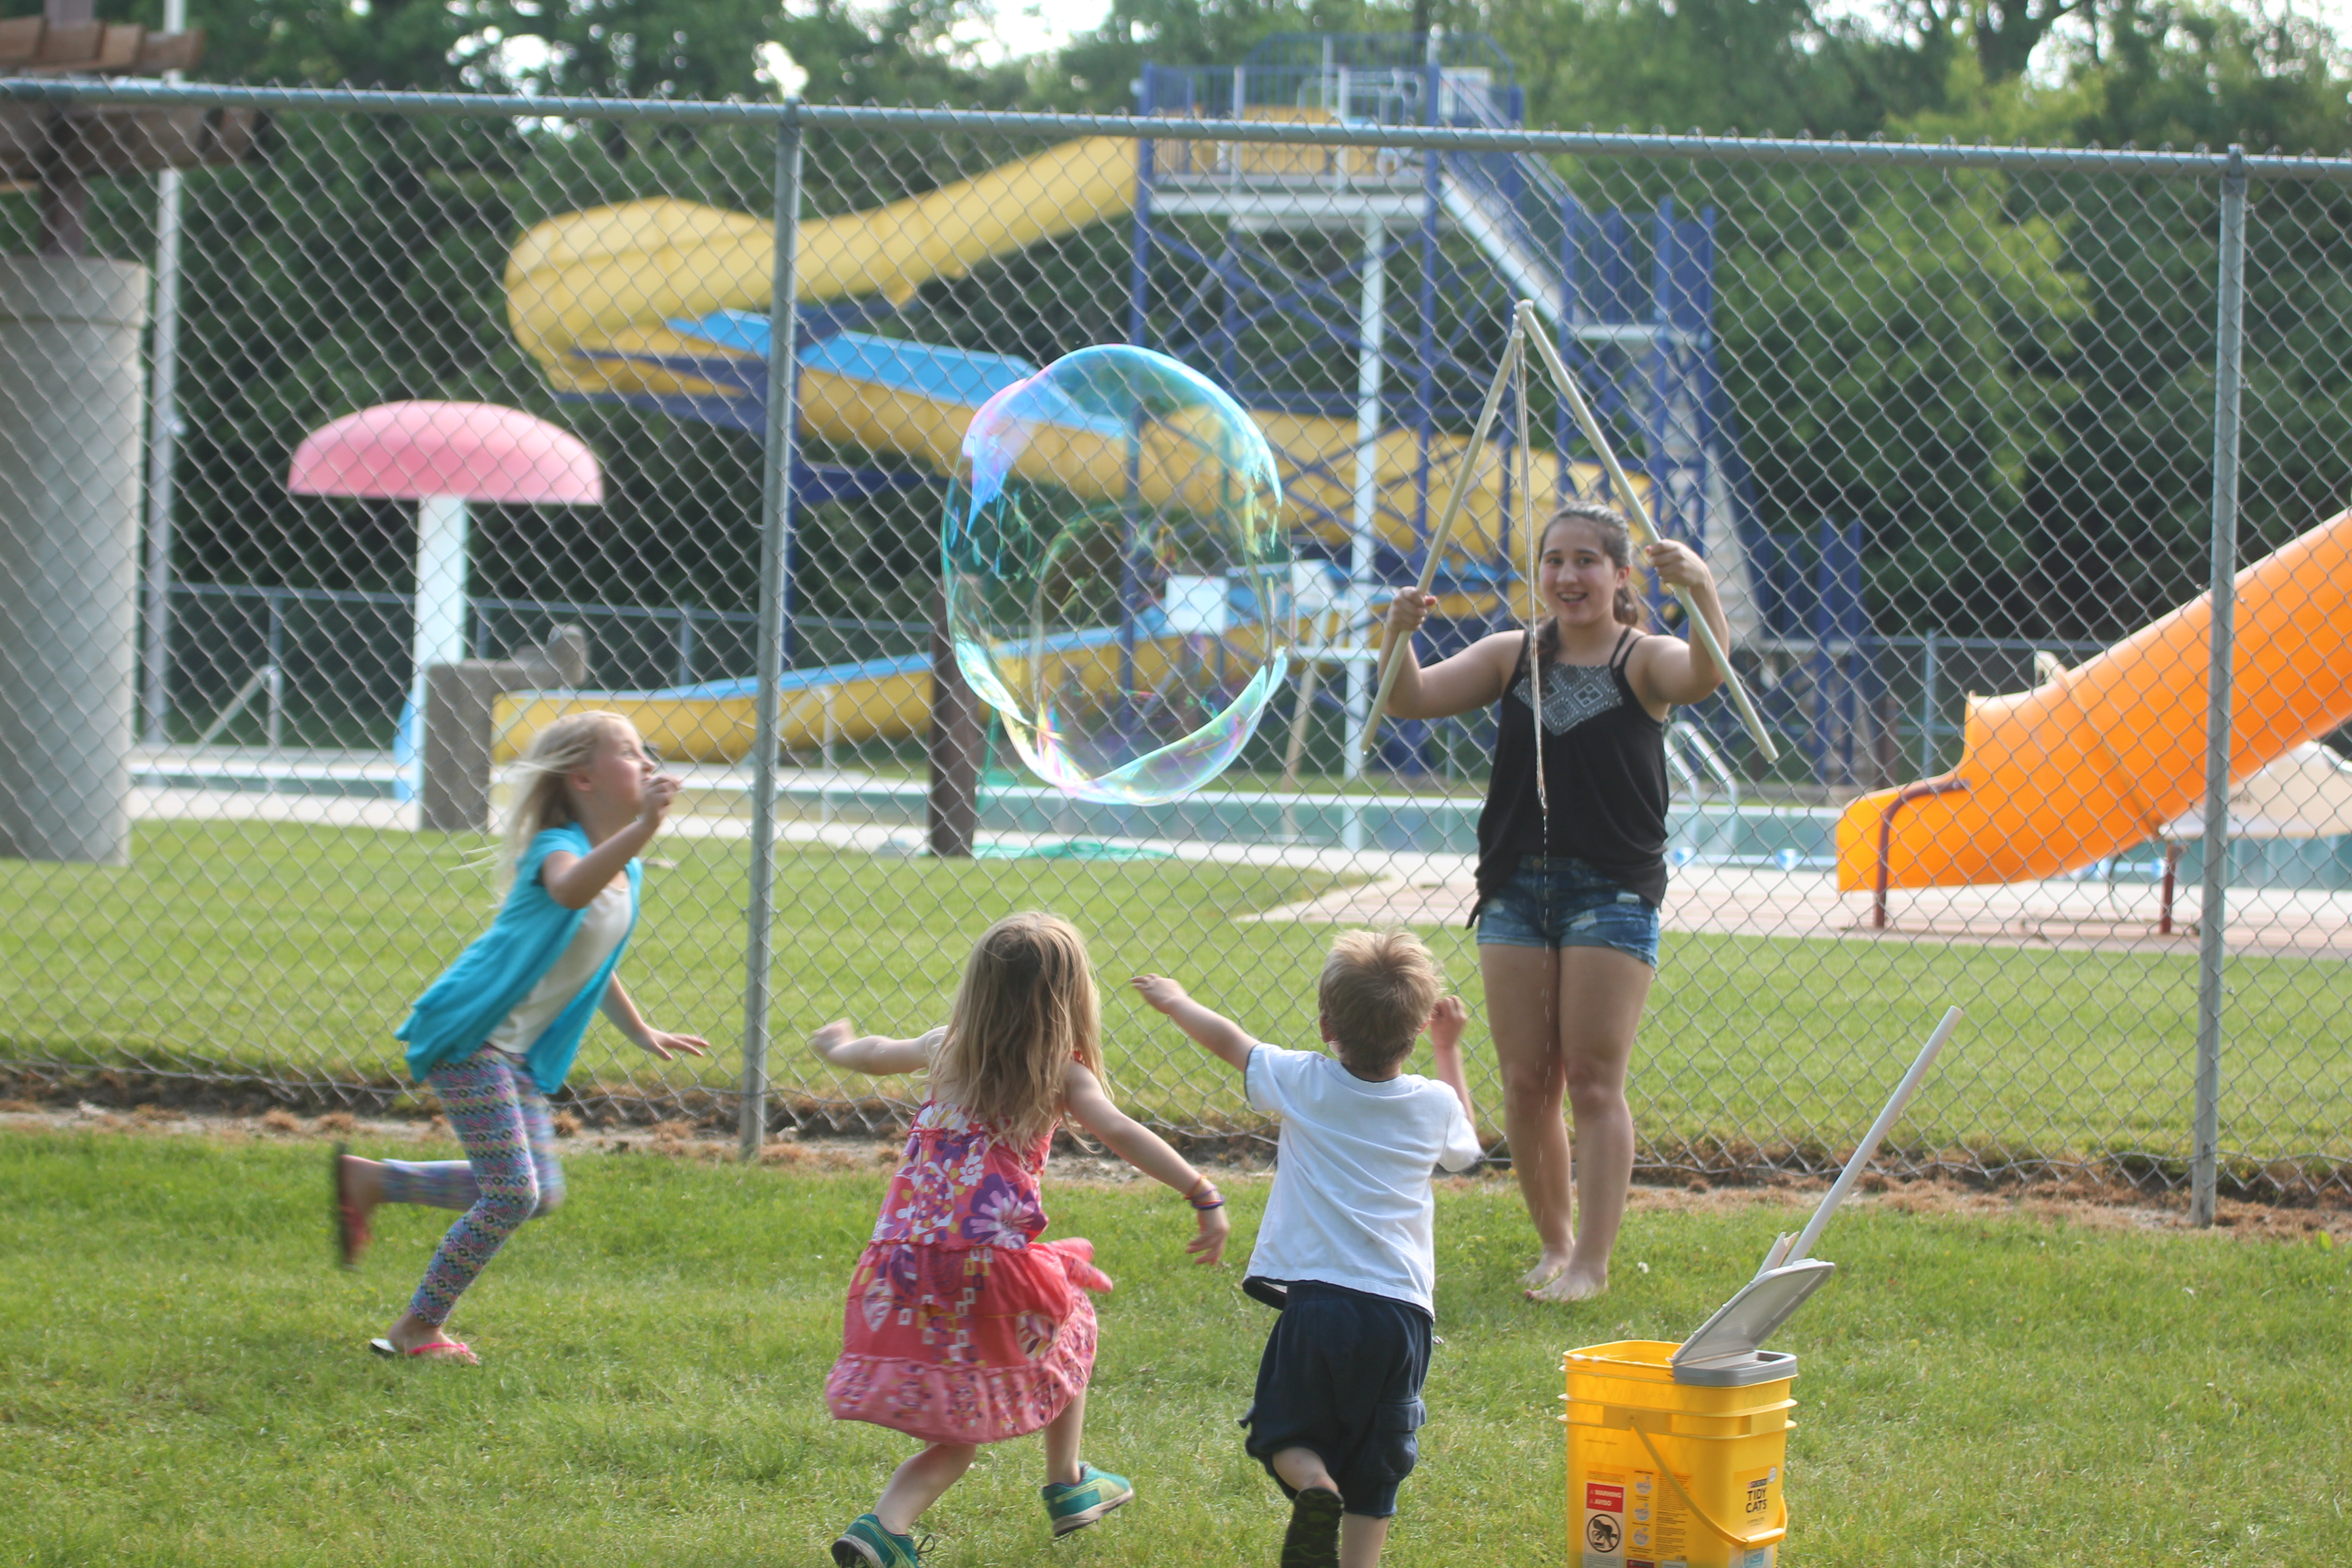 Summer Bash jumpstarts an active summer